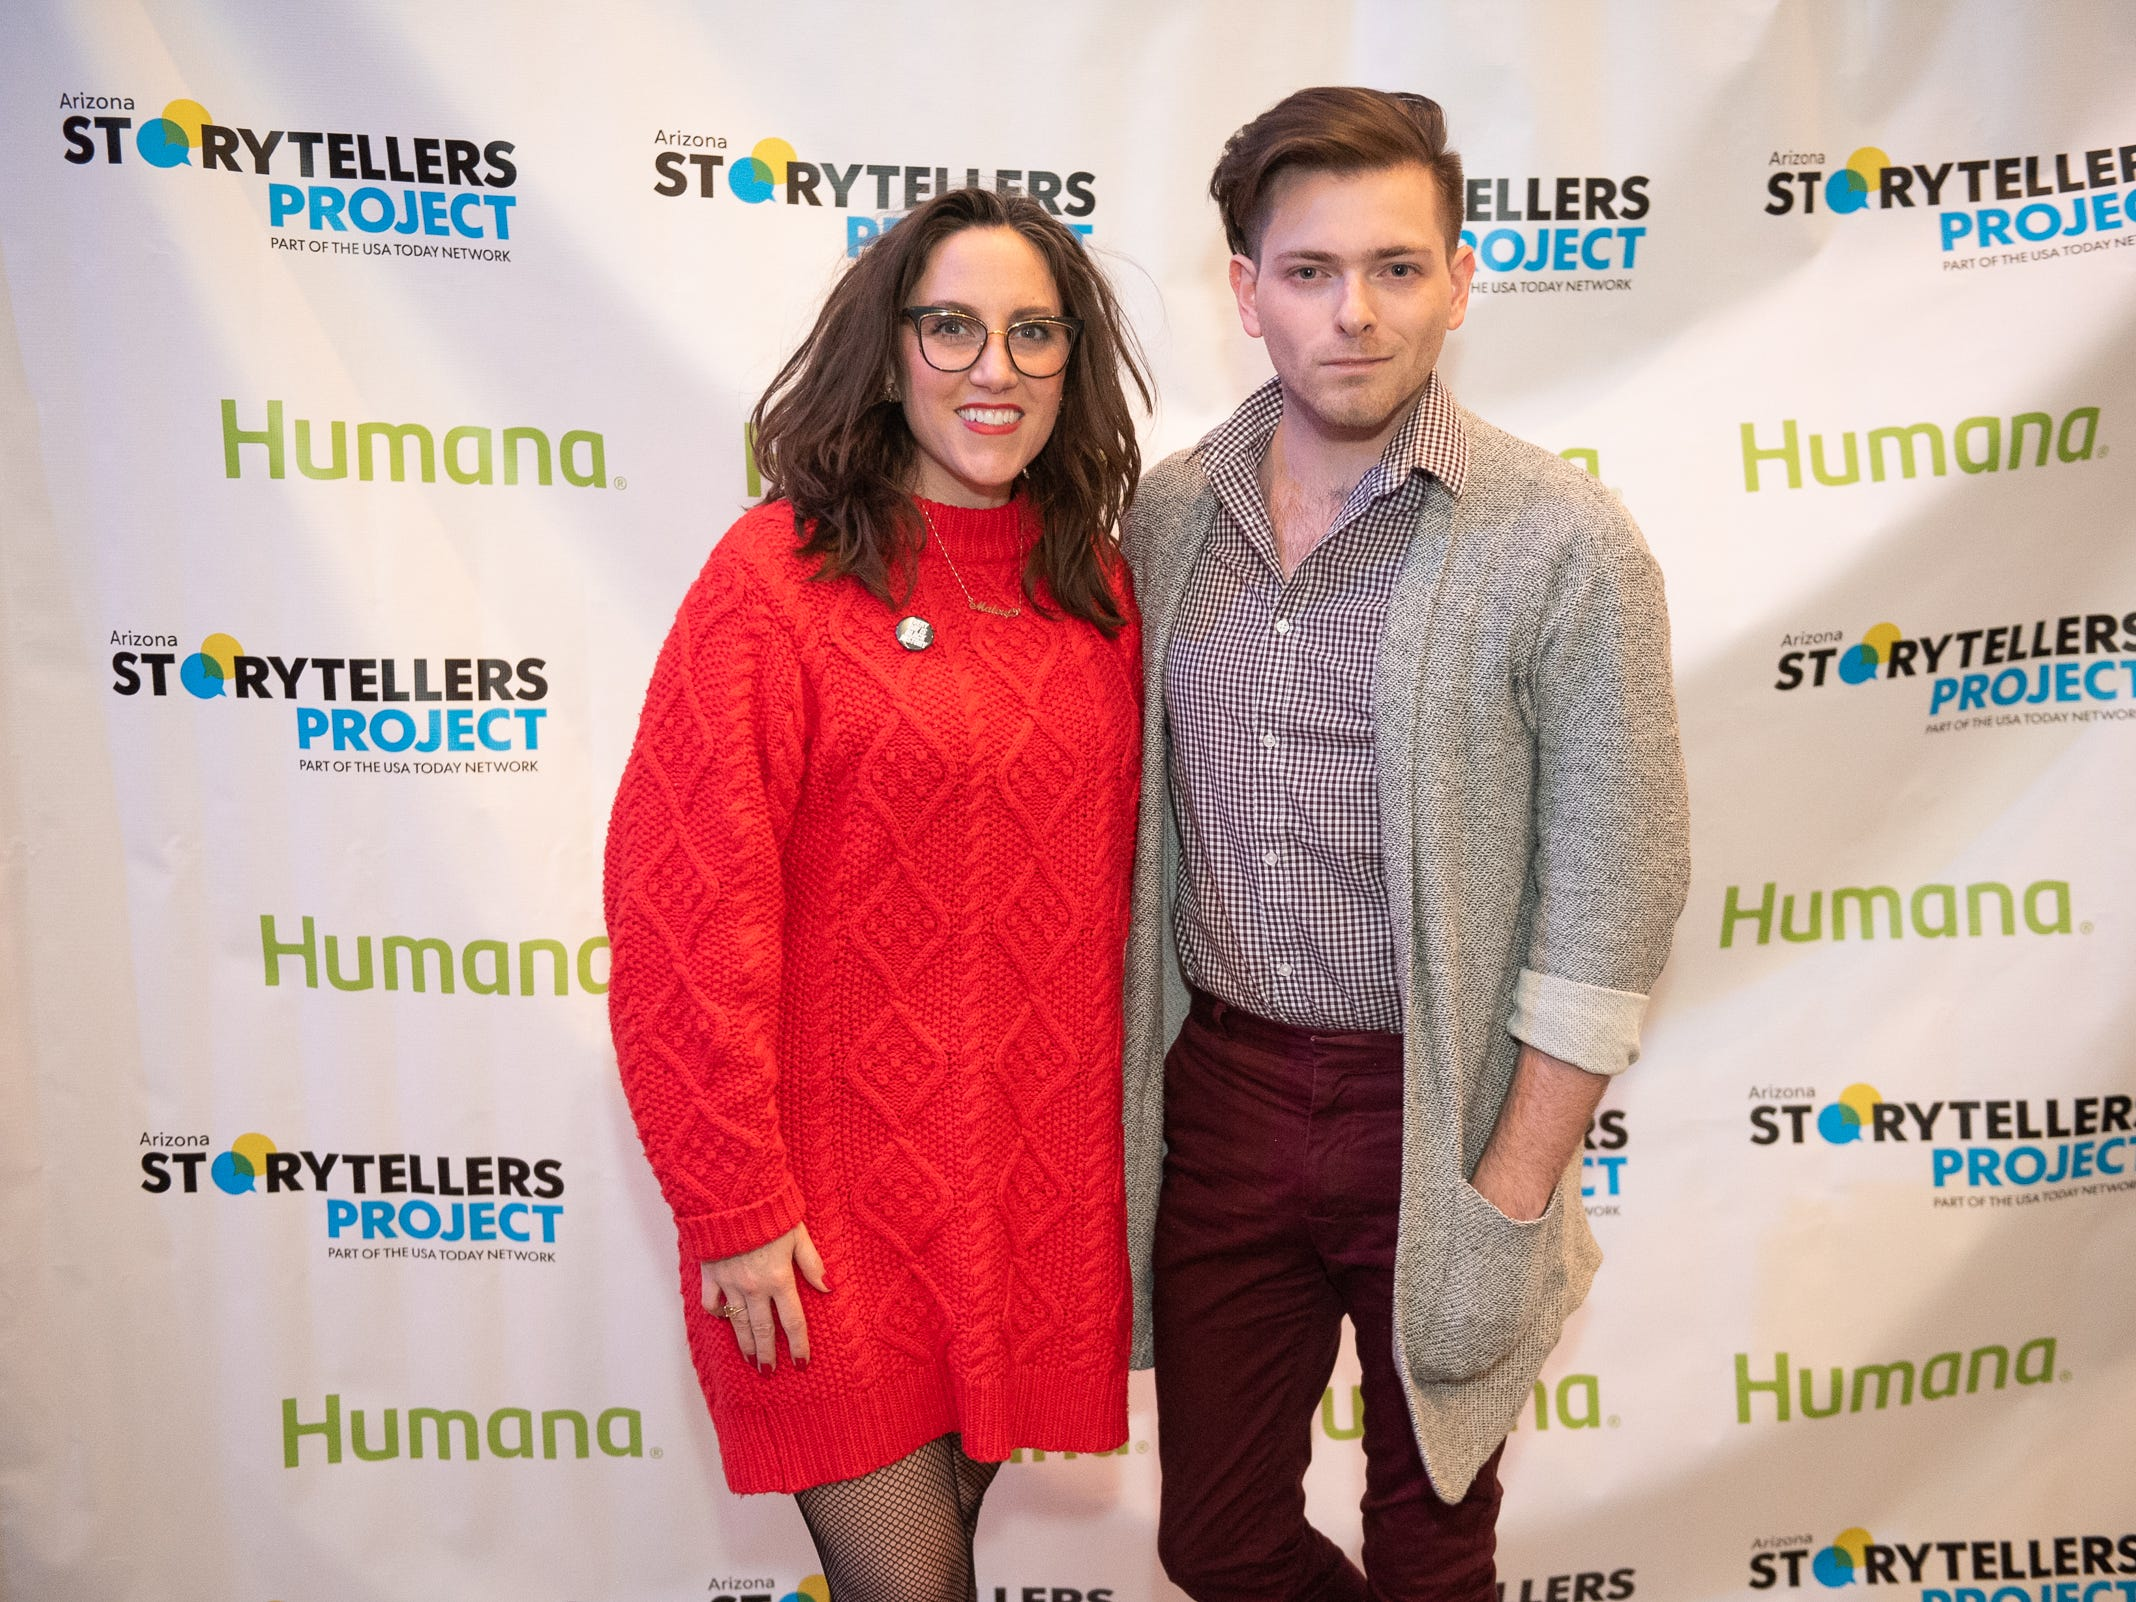 """Co-hosts Megan Finnerty and Garrett Mitchell strike a pose at the Humana/Storytellers Project step and repeat during """"Arizona Storytellers: Romance or Not"""" at the Scottsdale Center for Performing Arts on Wednesday, Feb. 13, 2019."""